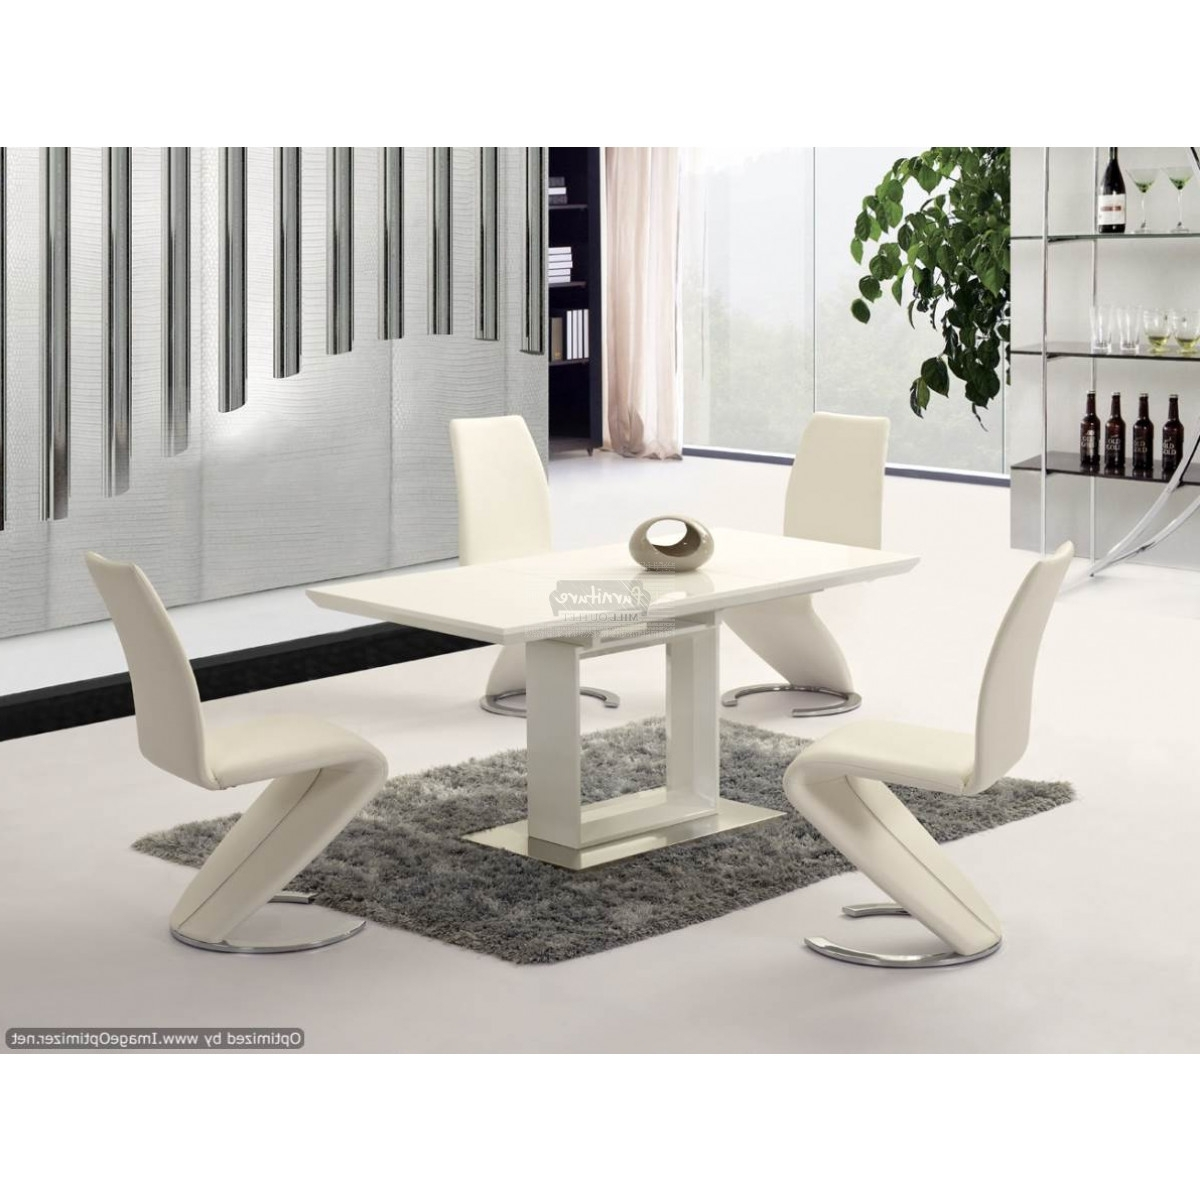 Newest Space White High Gloss Extending Dining Table – 120Cm To 160Cm For White Extending Dining Tables And Chairs (View 5 of 25)